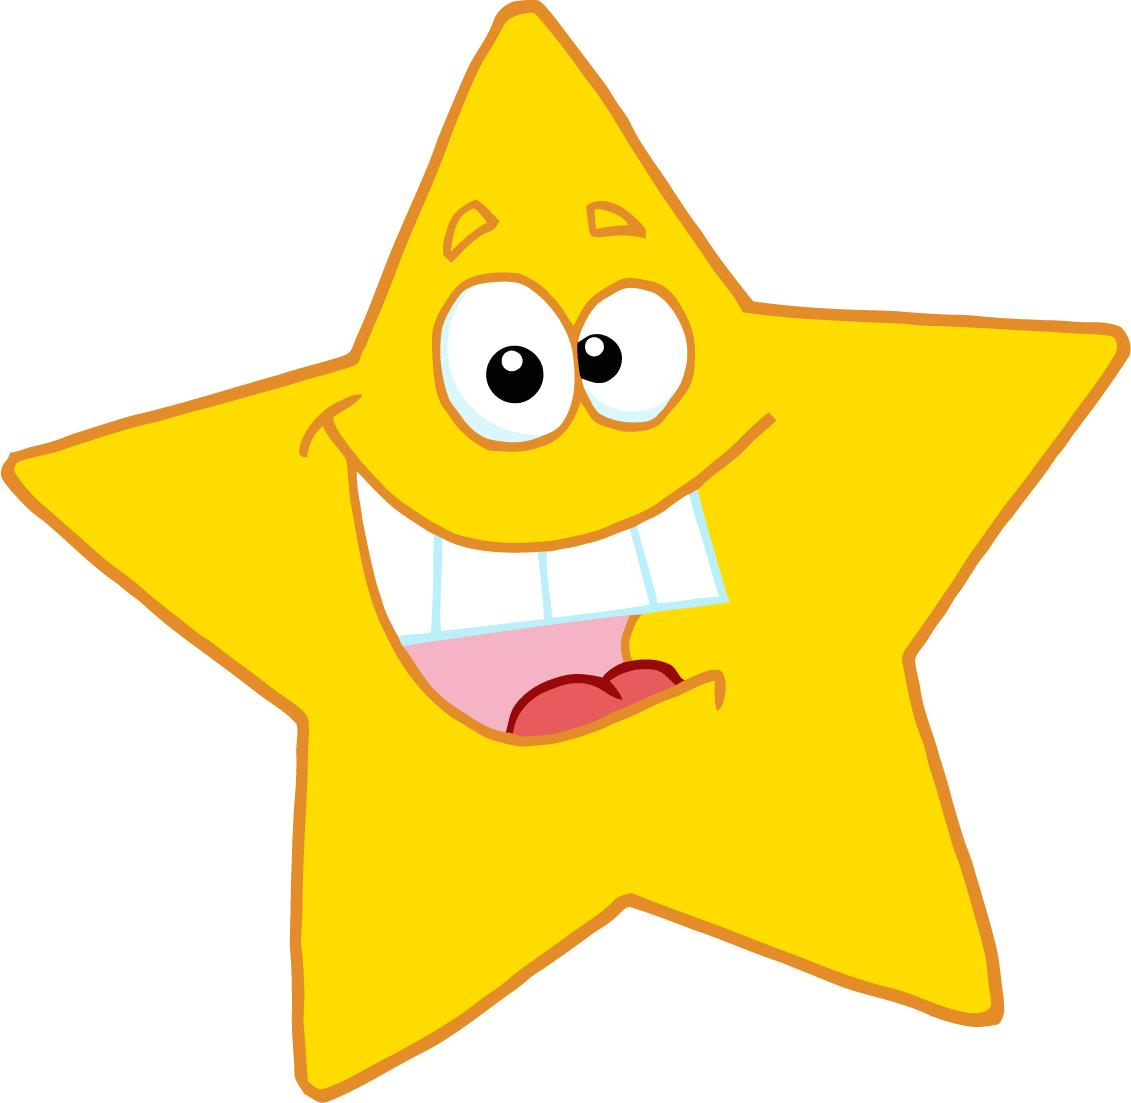 1131x1103 Star Clipart And Animated Graphics Of Stars 2 3 Clipartix